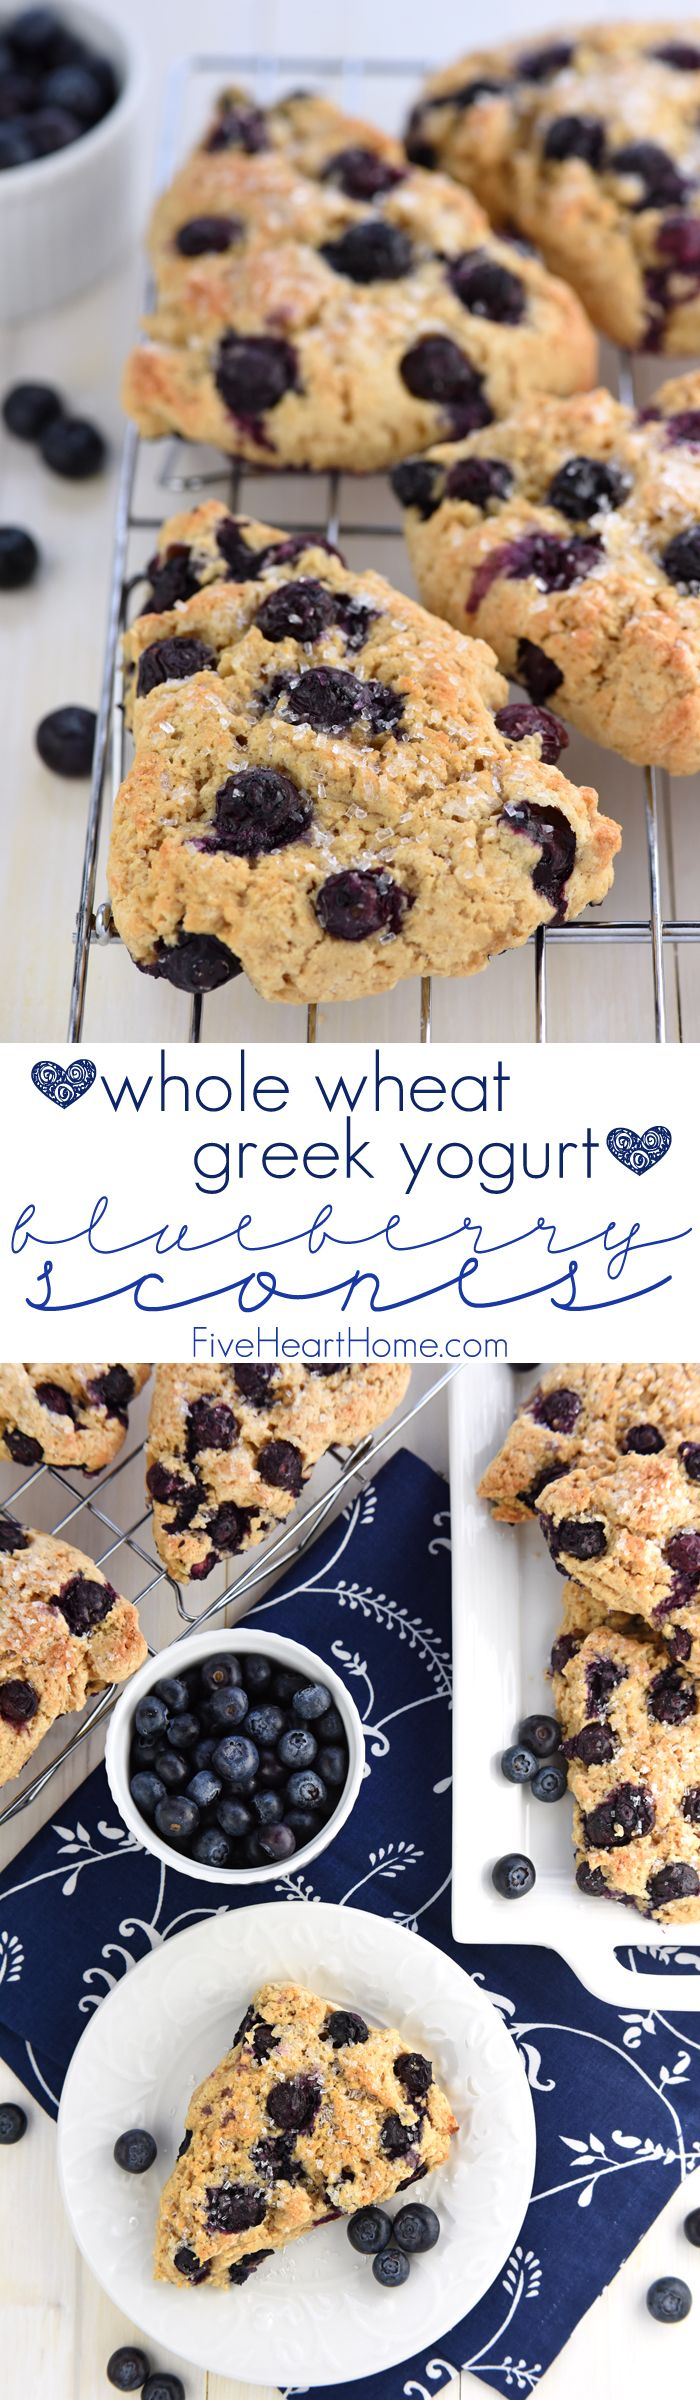 Whole Wheat Greek Yogurt Blueberry Scones ~ tender, moist, and bursting with berries, these scones are a wholesome spin on a classic breakfast treat...but nobody would ever guess by their delicious, decadent flavor! | FiveHeartHome.com